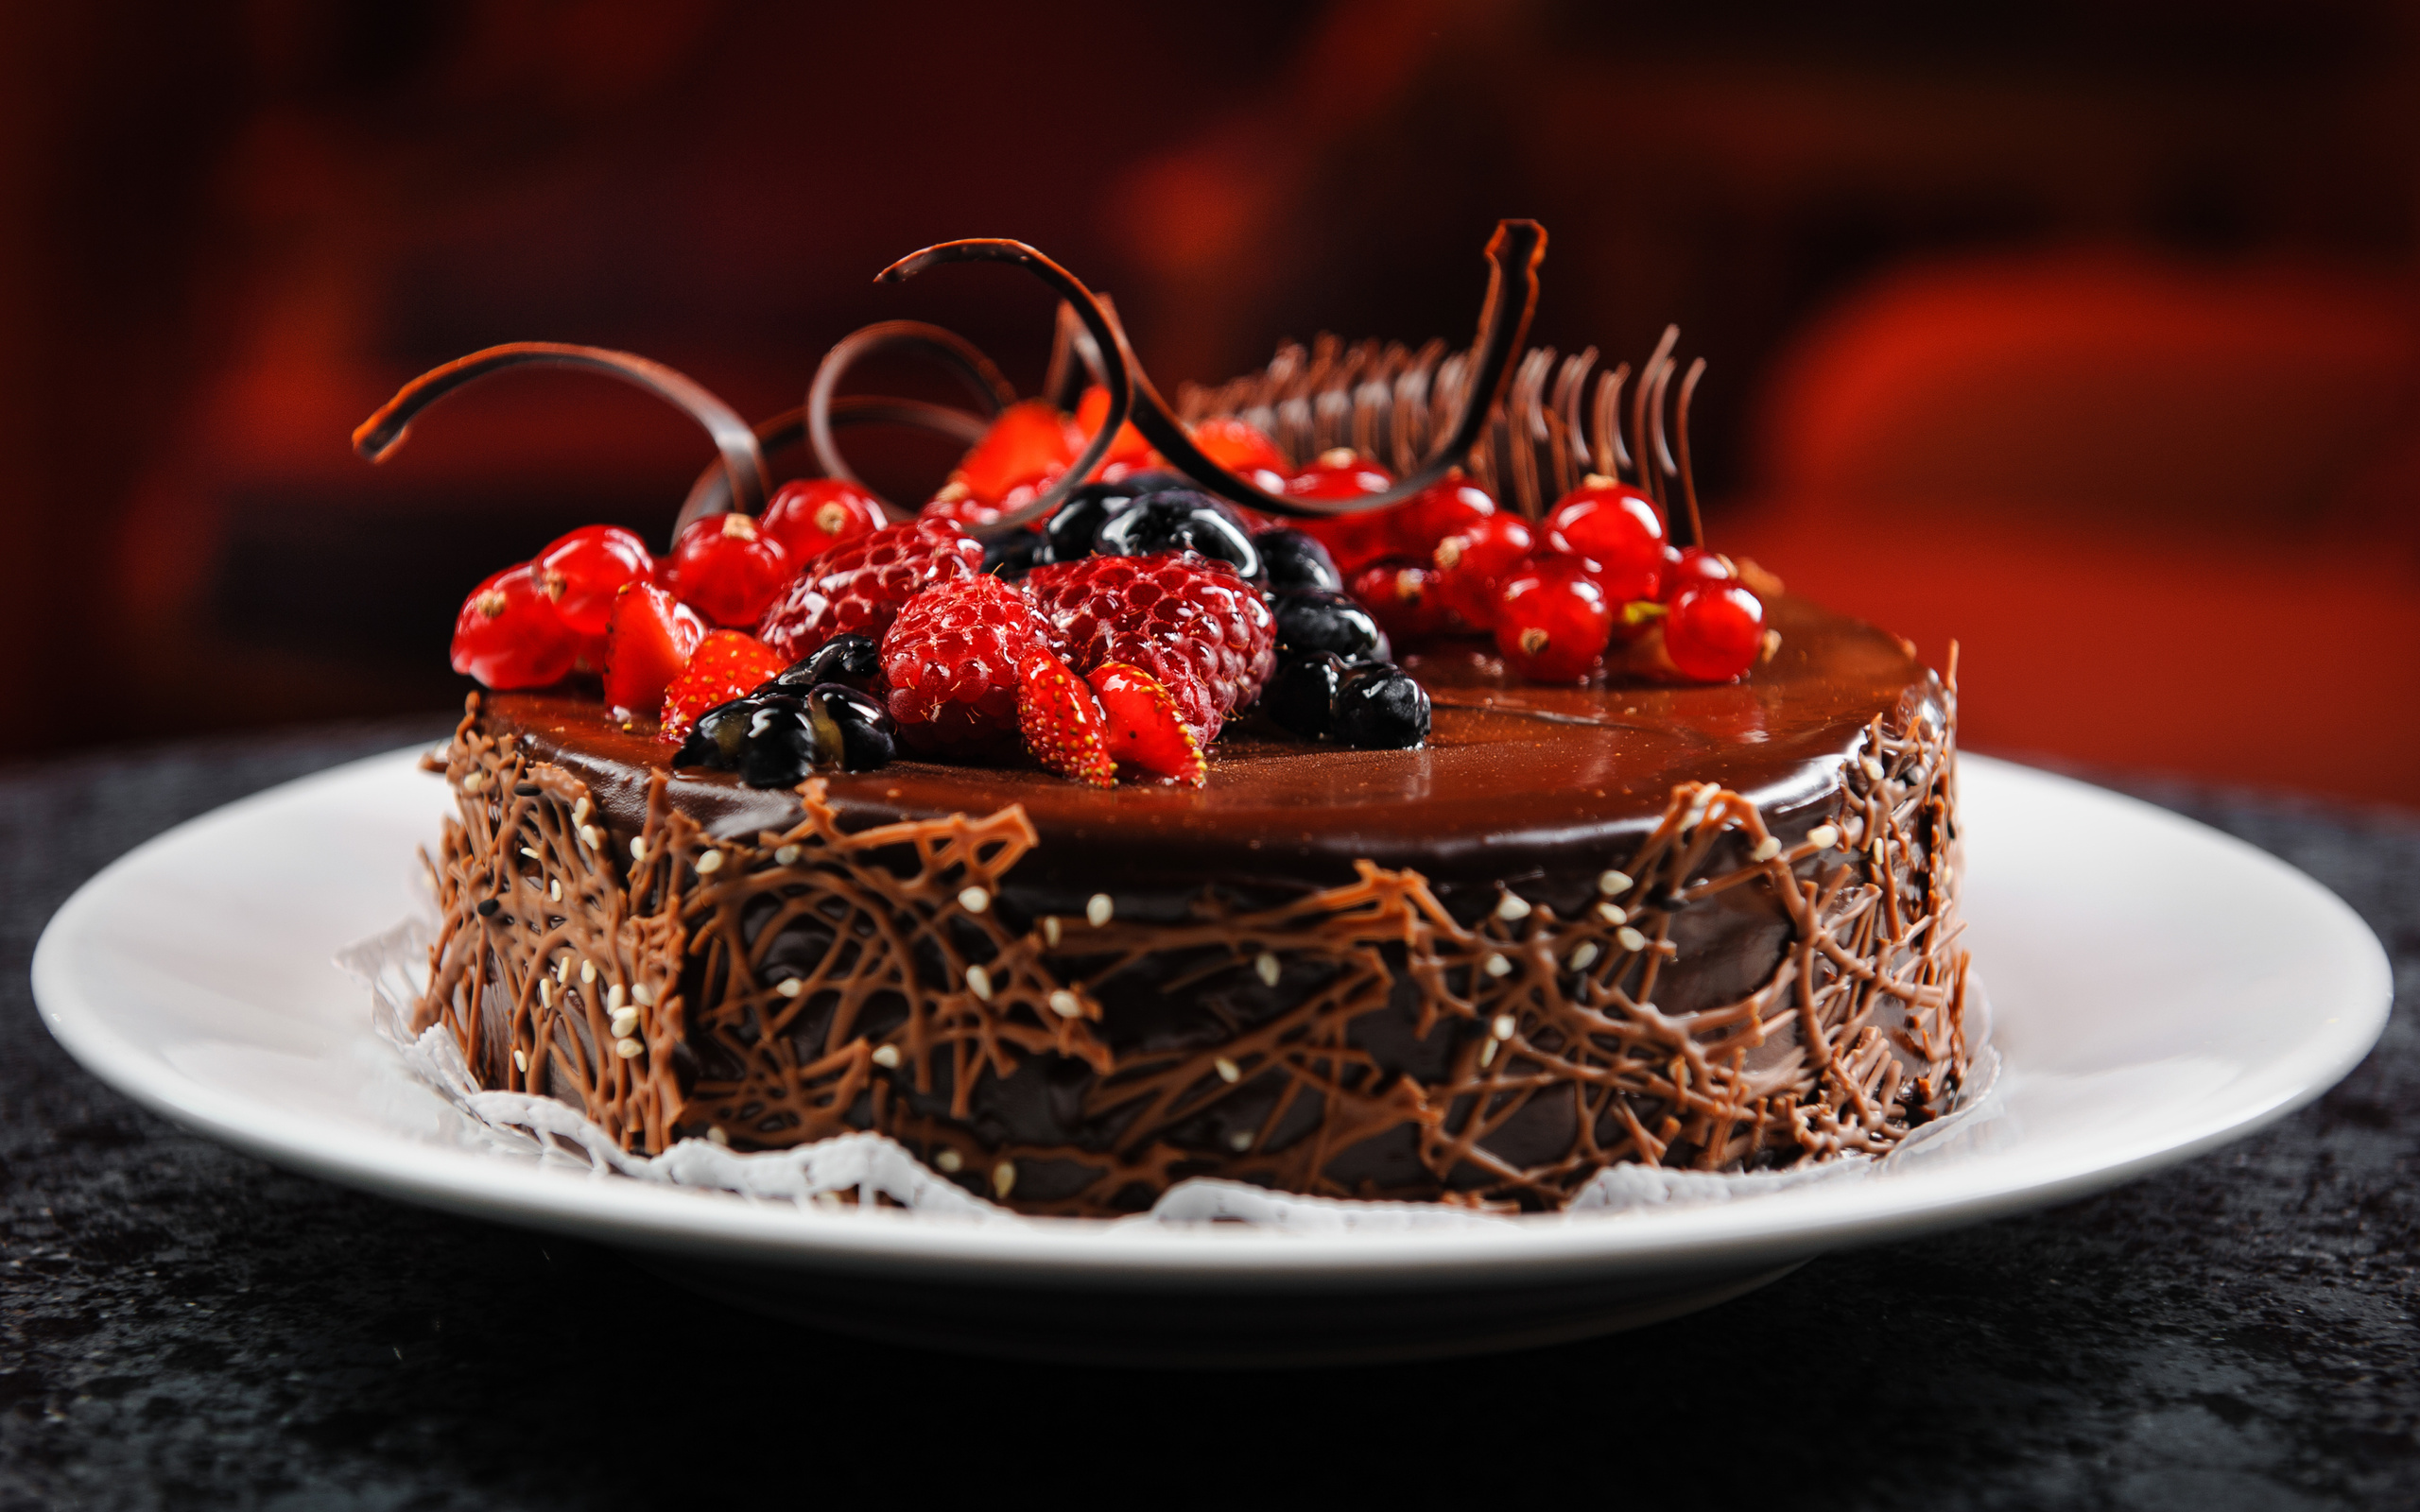 Cake Wallpapers High Quality